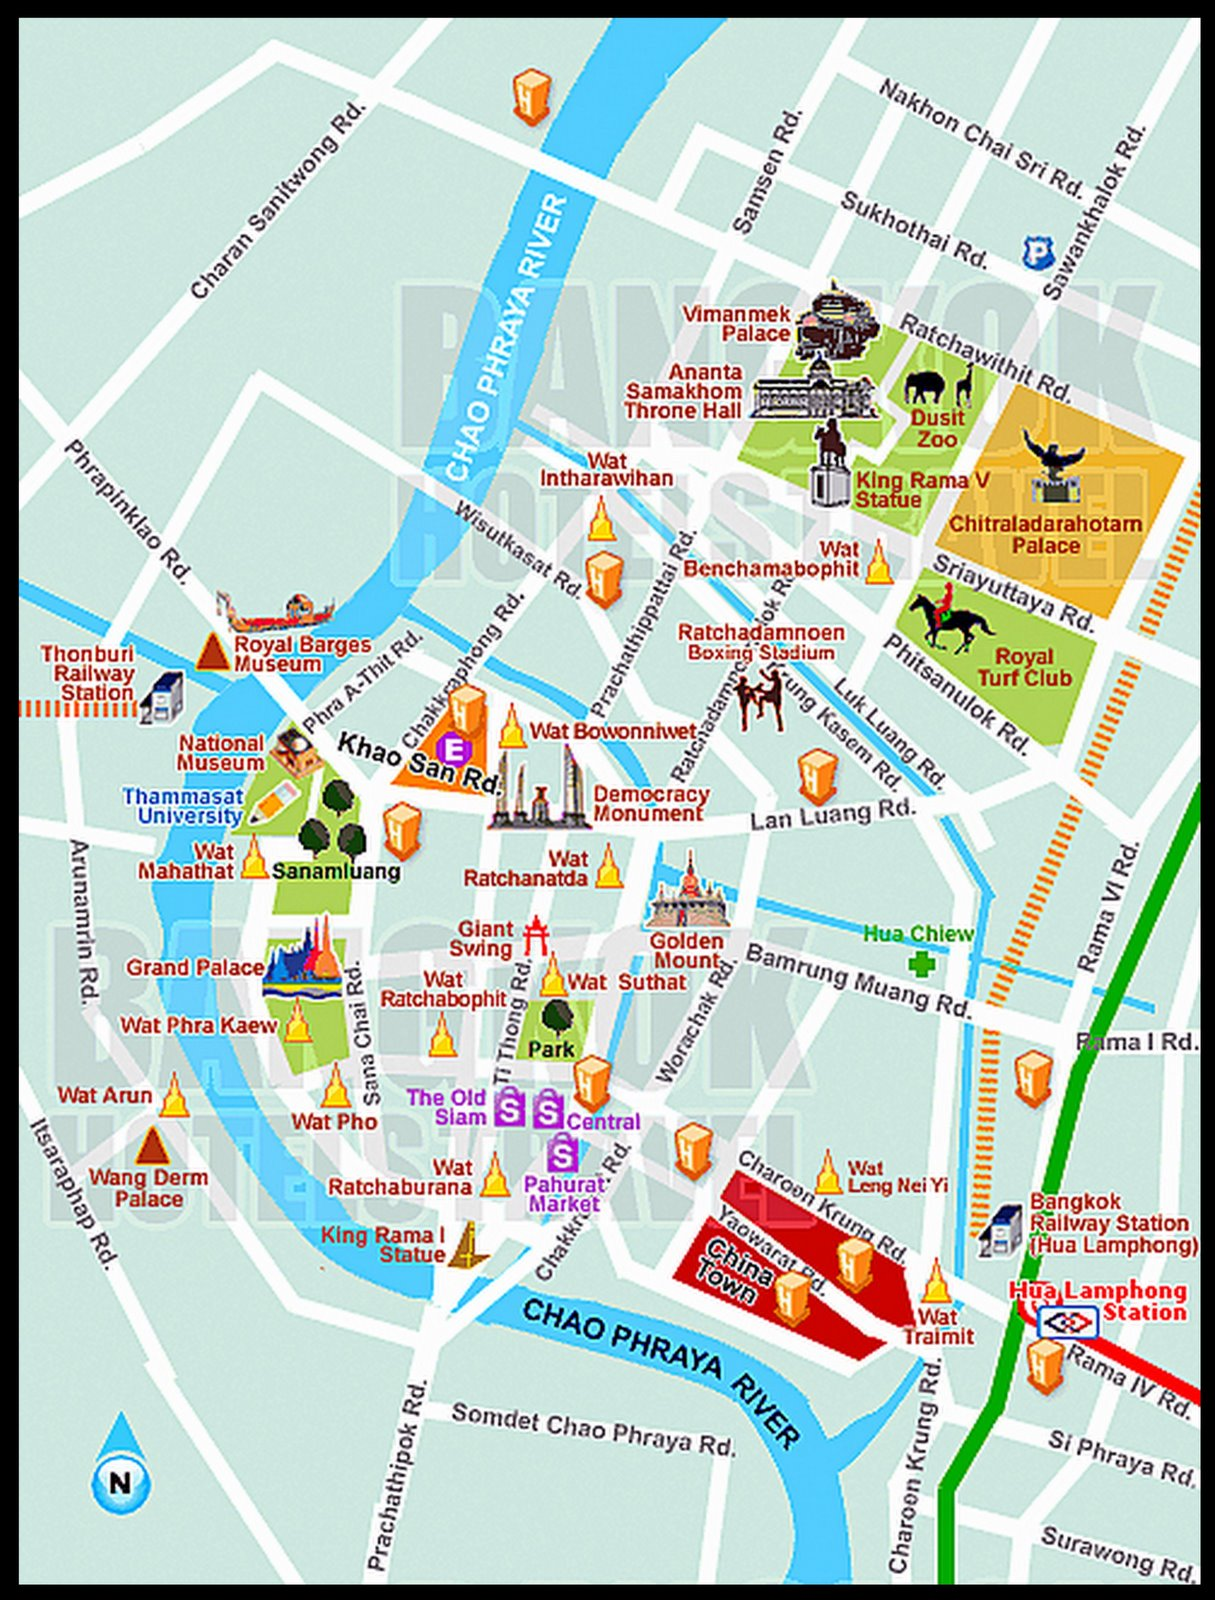 about bts bangkok thailand airport map complete tourist  - tourist attractions map of bangkok thailand